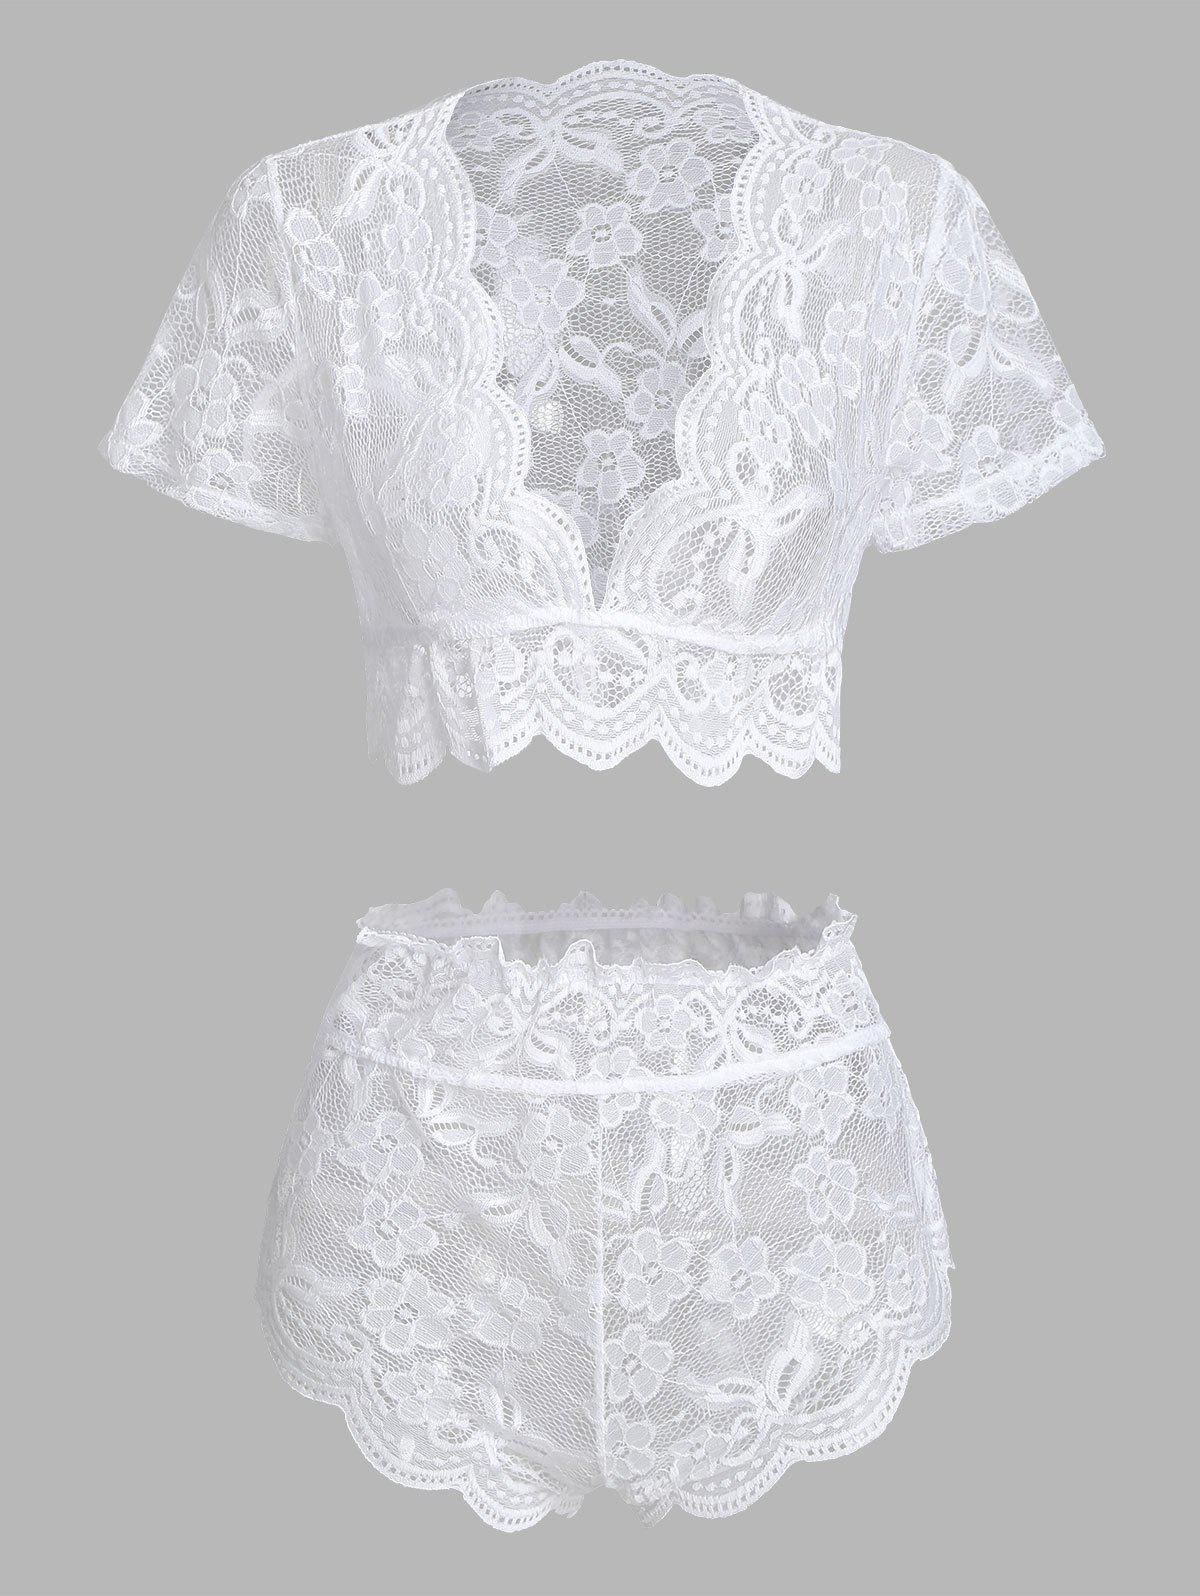 Floral Lace Scalloped Trim Lingerie Set - WHITE M